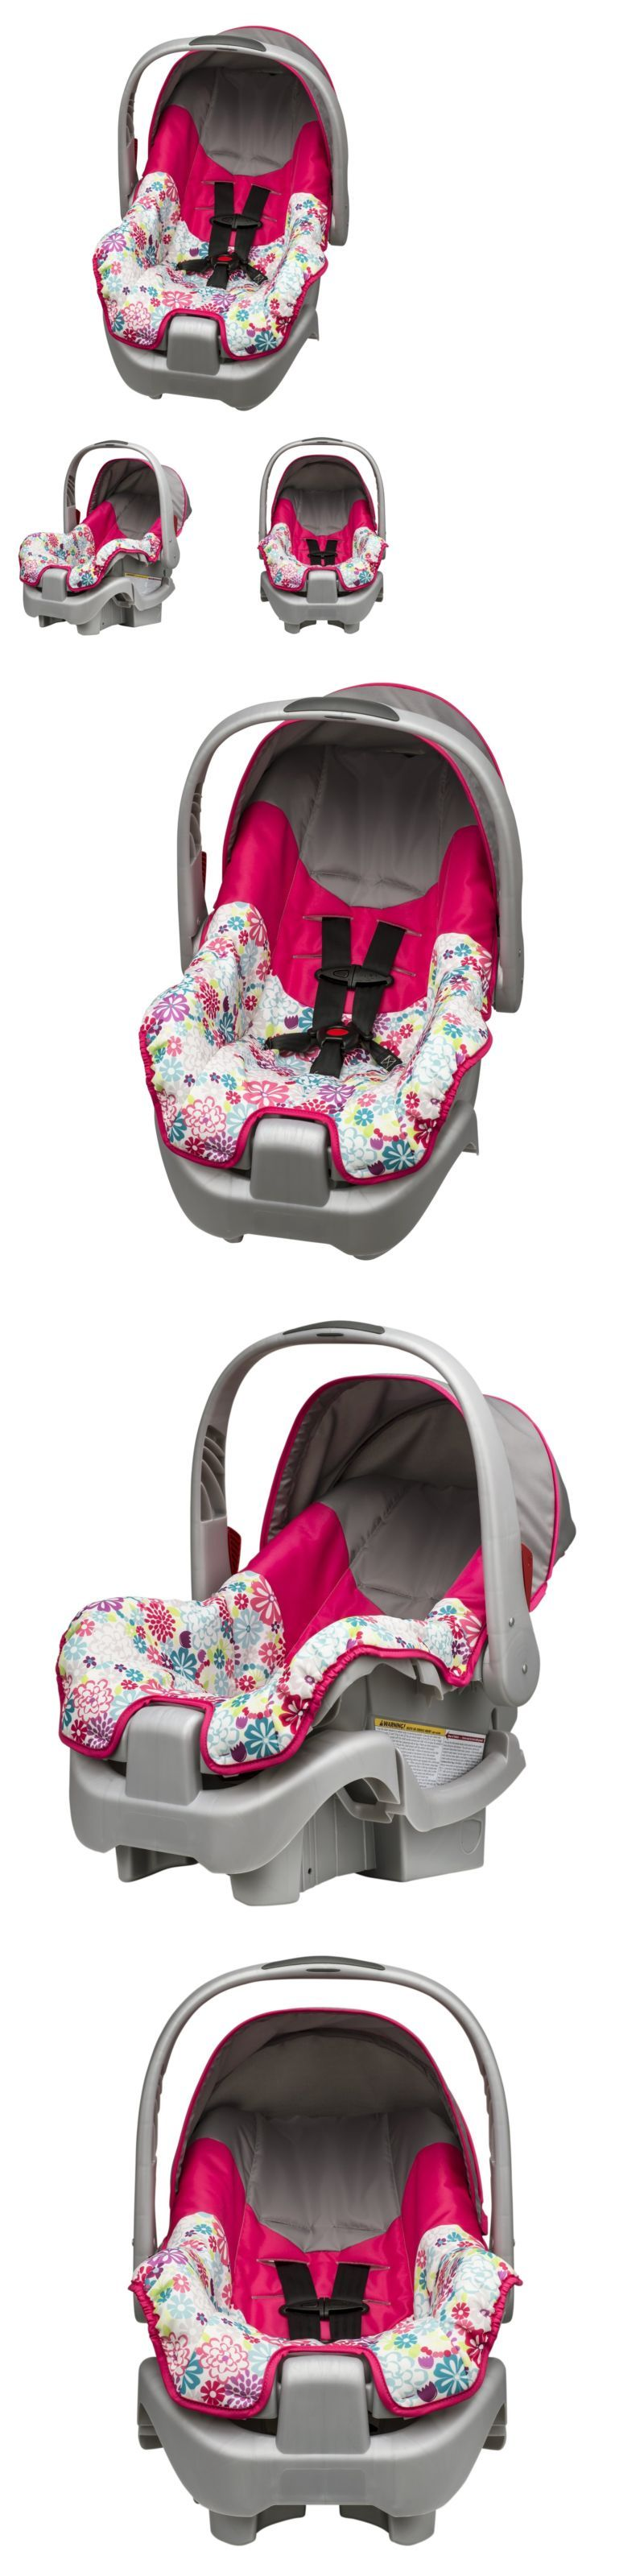 Infant Car Seat 5 20 Lbs 66696 Evenflo Nurture Sabrina BUY IT NOW ONLY 5999 On EBay